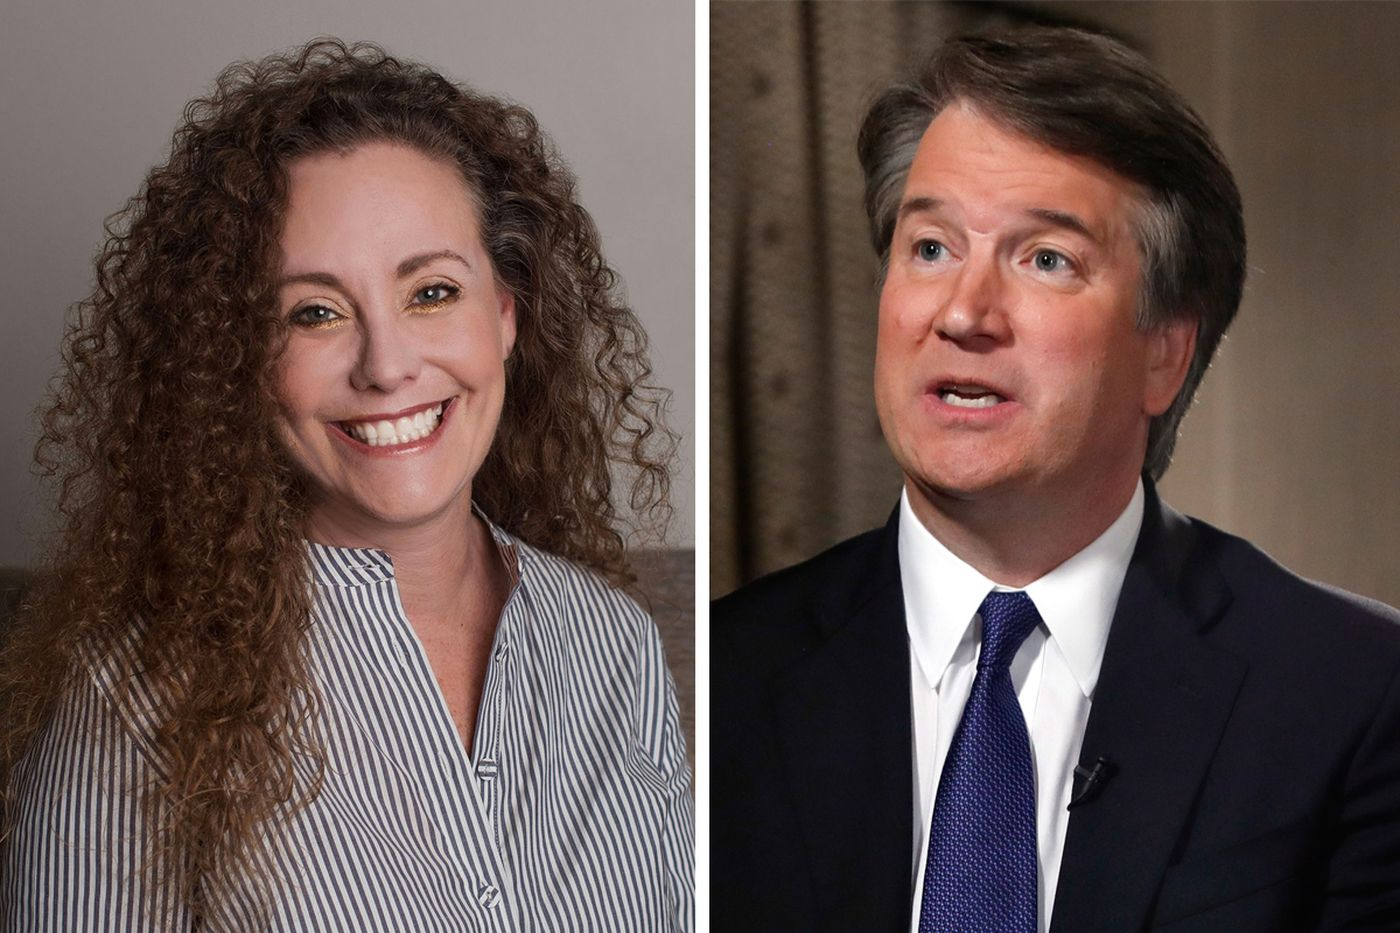 New Kavanaugh Accuser Makes 'Gang Rape' Accusations